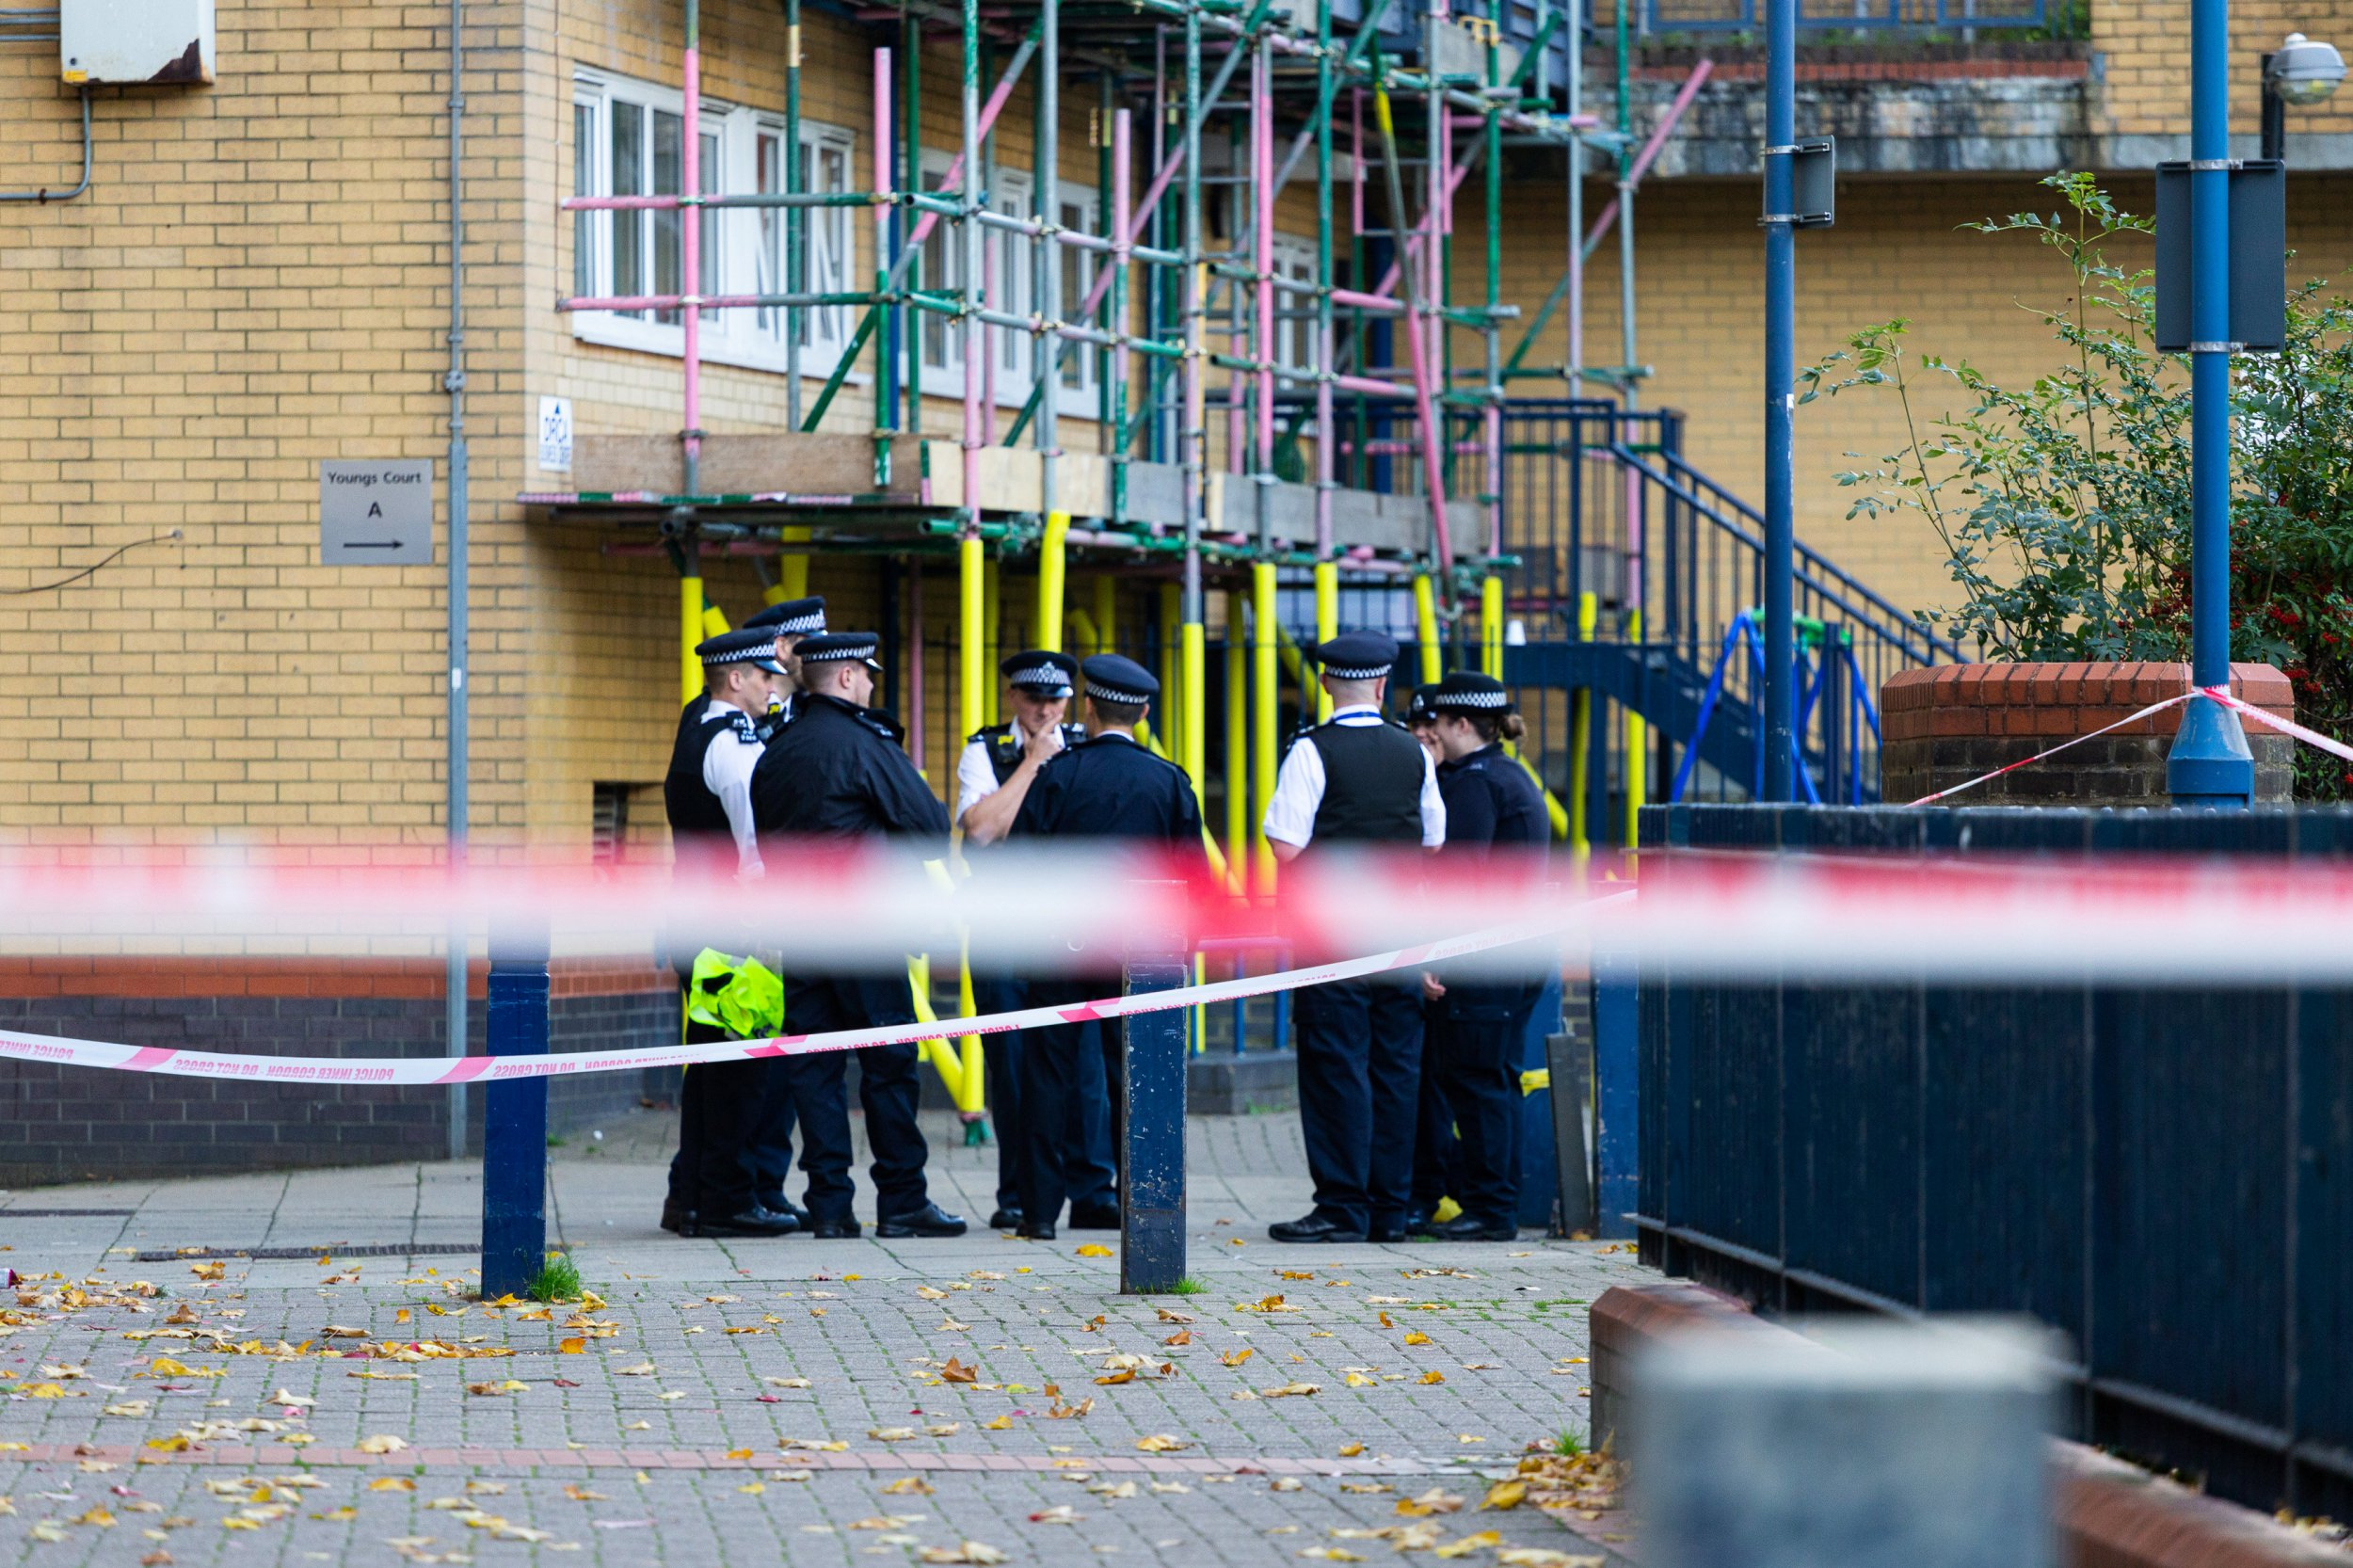 """A large police cordon remains in place following the murder on October 17th of Ian Tomlin, 46, at the high-rise Doddington Estate in Battersea, South London . Battersea, London, October 18 2018. See story NNmurder4. A ?devoted? dad-of-two died trying to protect his young children from anti-social drug dealers in his block of flats.Ian Tomlin, 46, was described as the ?loveliest, kindest guy? by a neighbour in his estate today (thur). The woman wished not to be named over fear of reprisals from his killers but added: """"He was a devoted dad. """"Ian was very against the drug dealers right where he was murdered on that first floor landing and especially the antisocial behaviour when he had his children with him - noise up to four of five in the morning."""